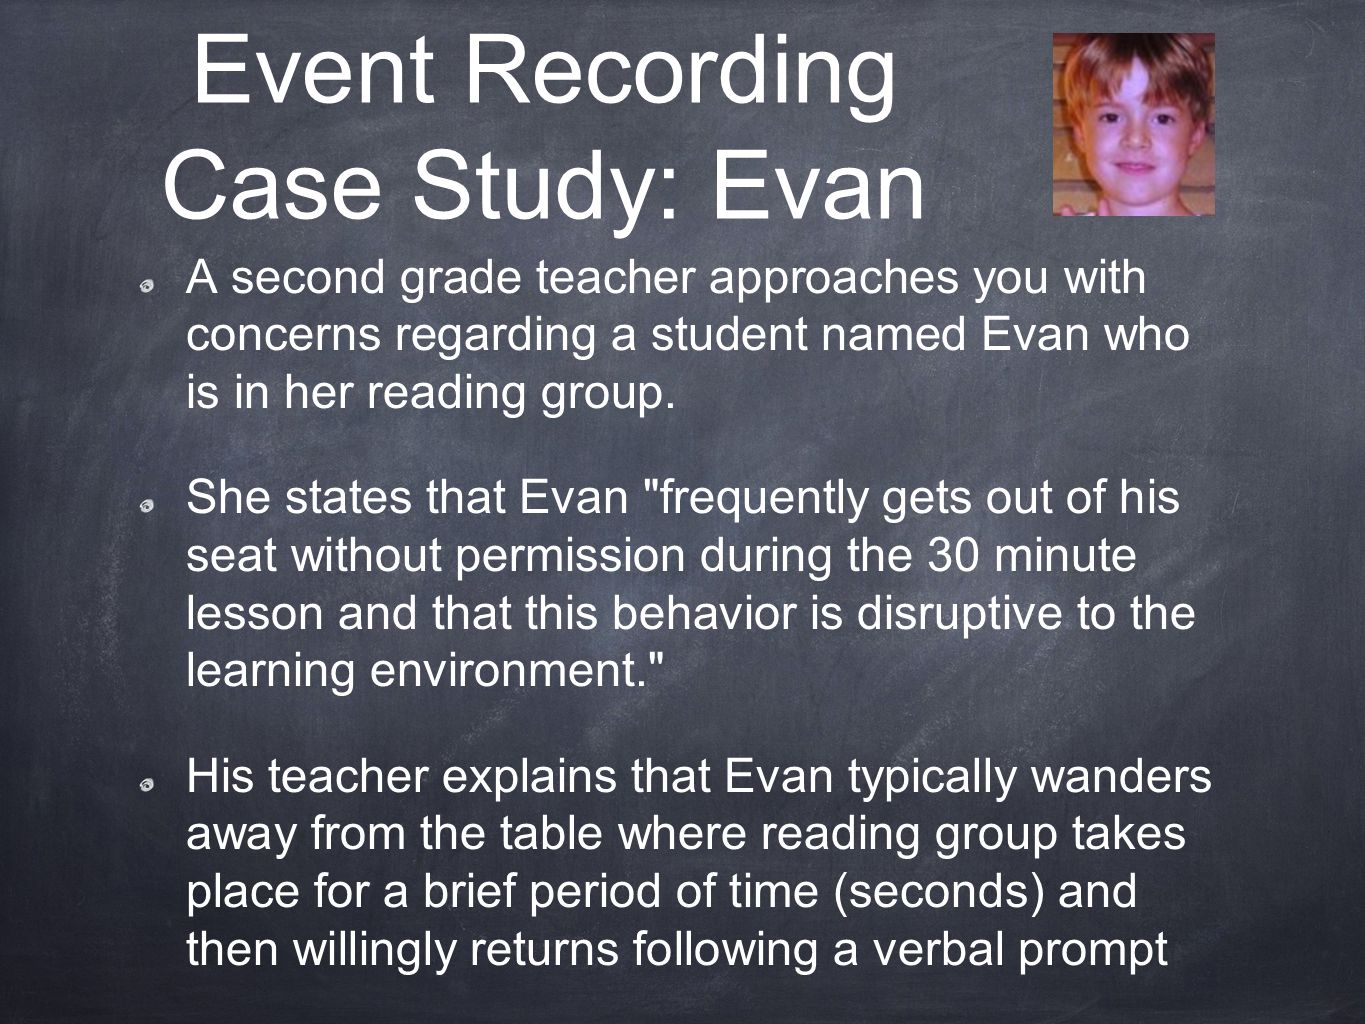 A second grade teacher approaches you with concerns regarding a student named Evan who is in her reading group.